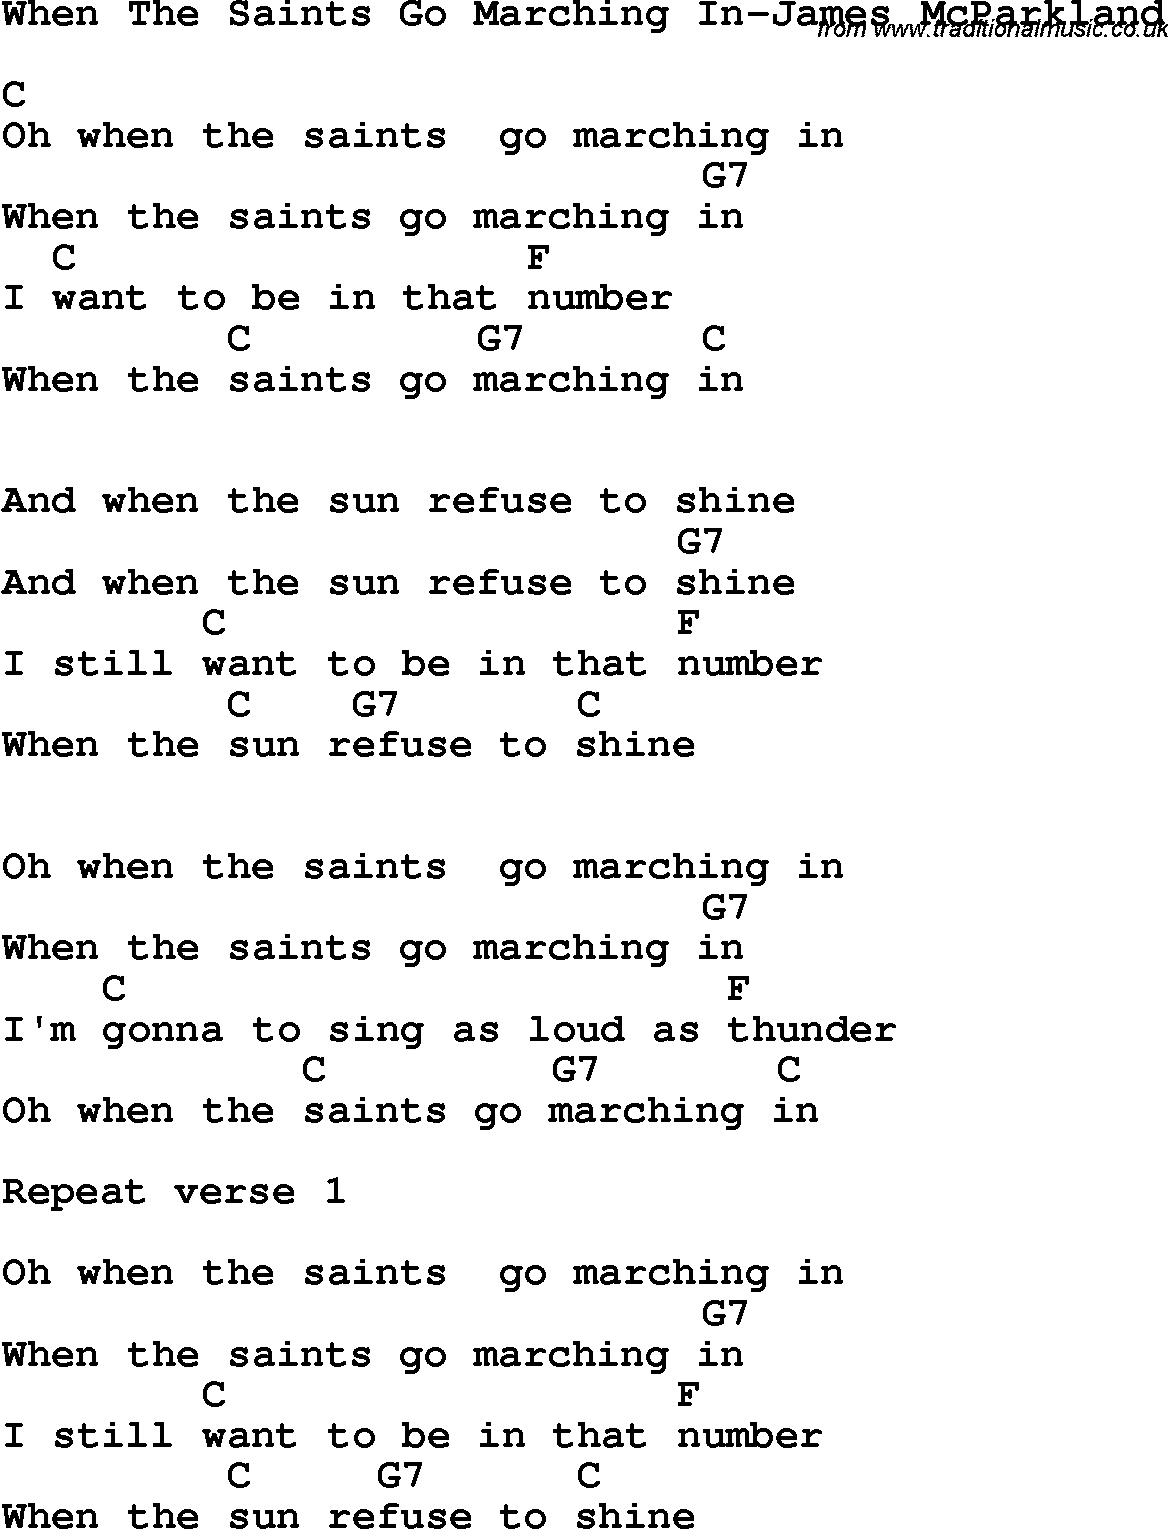 When the saints go marching in lyrics k kub 2018 hexwebz Image collections